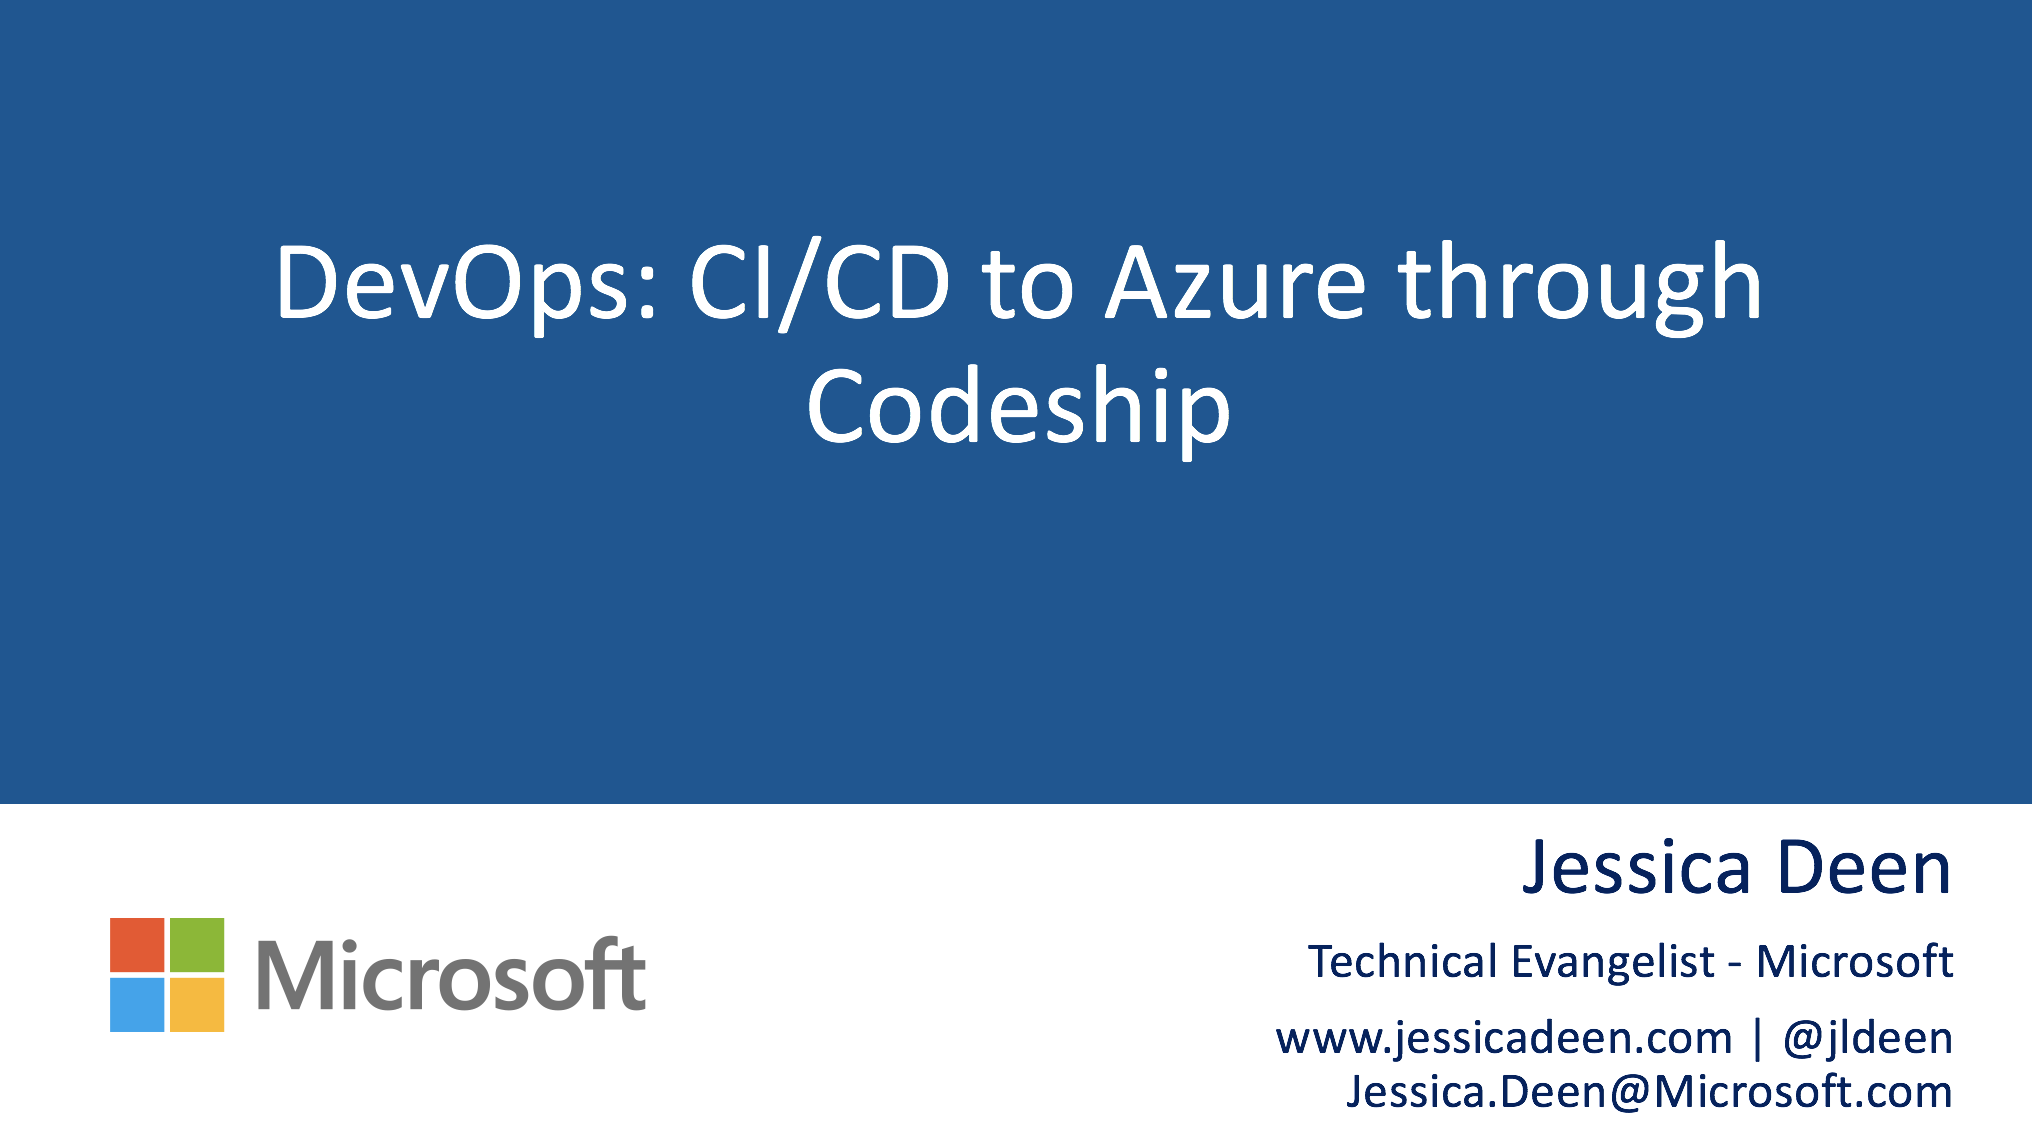 Linuxfest Northwest Deck: DevOps: CI/CD to Azure through Codeship